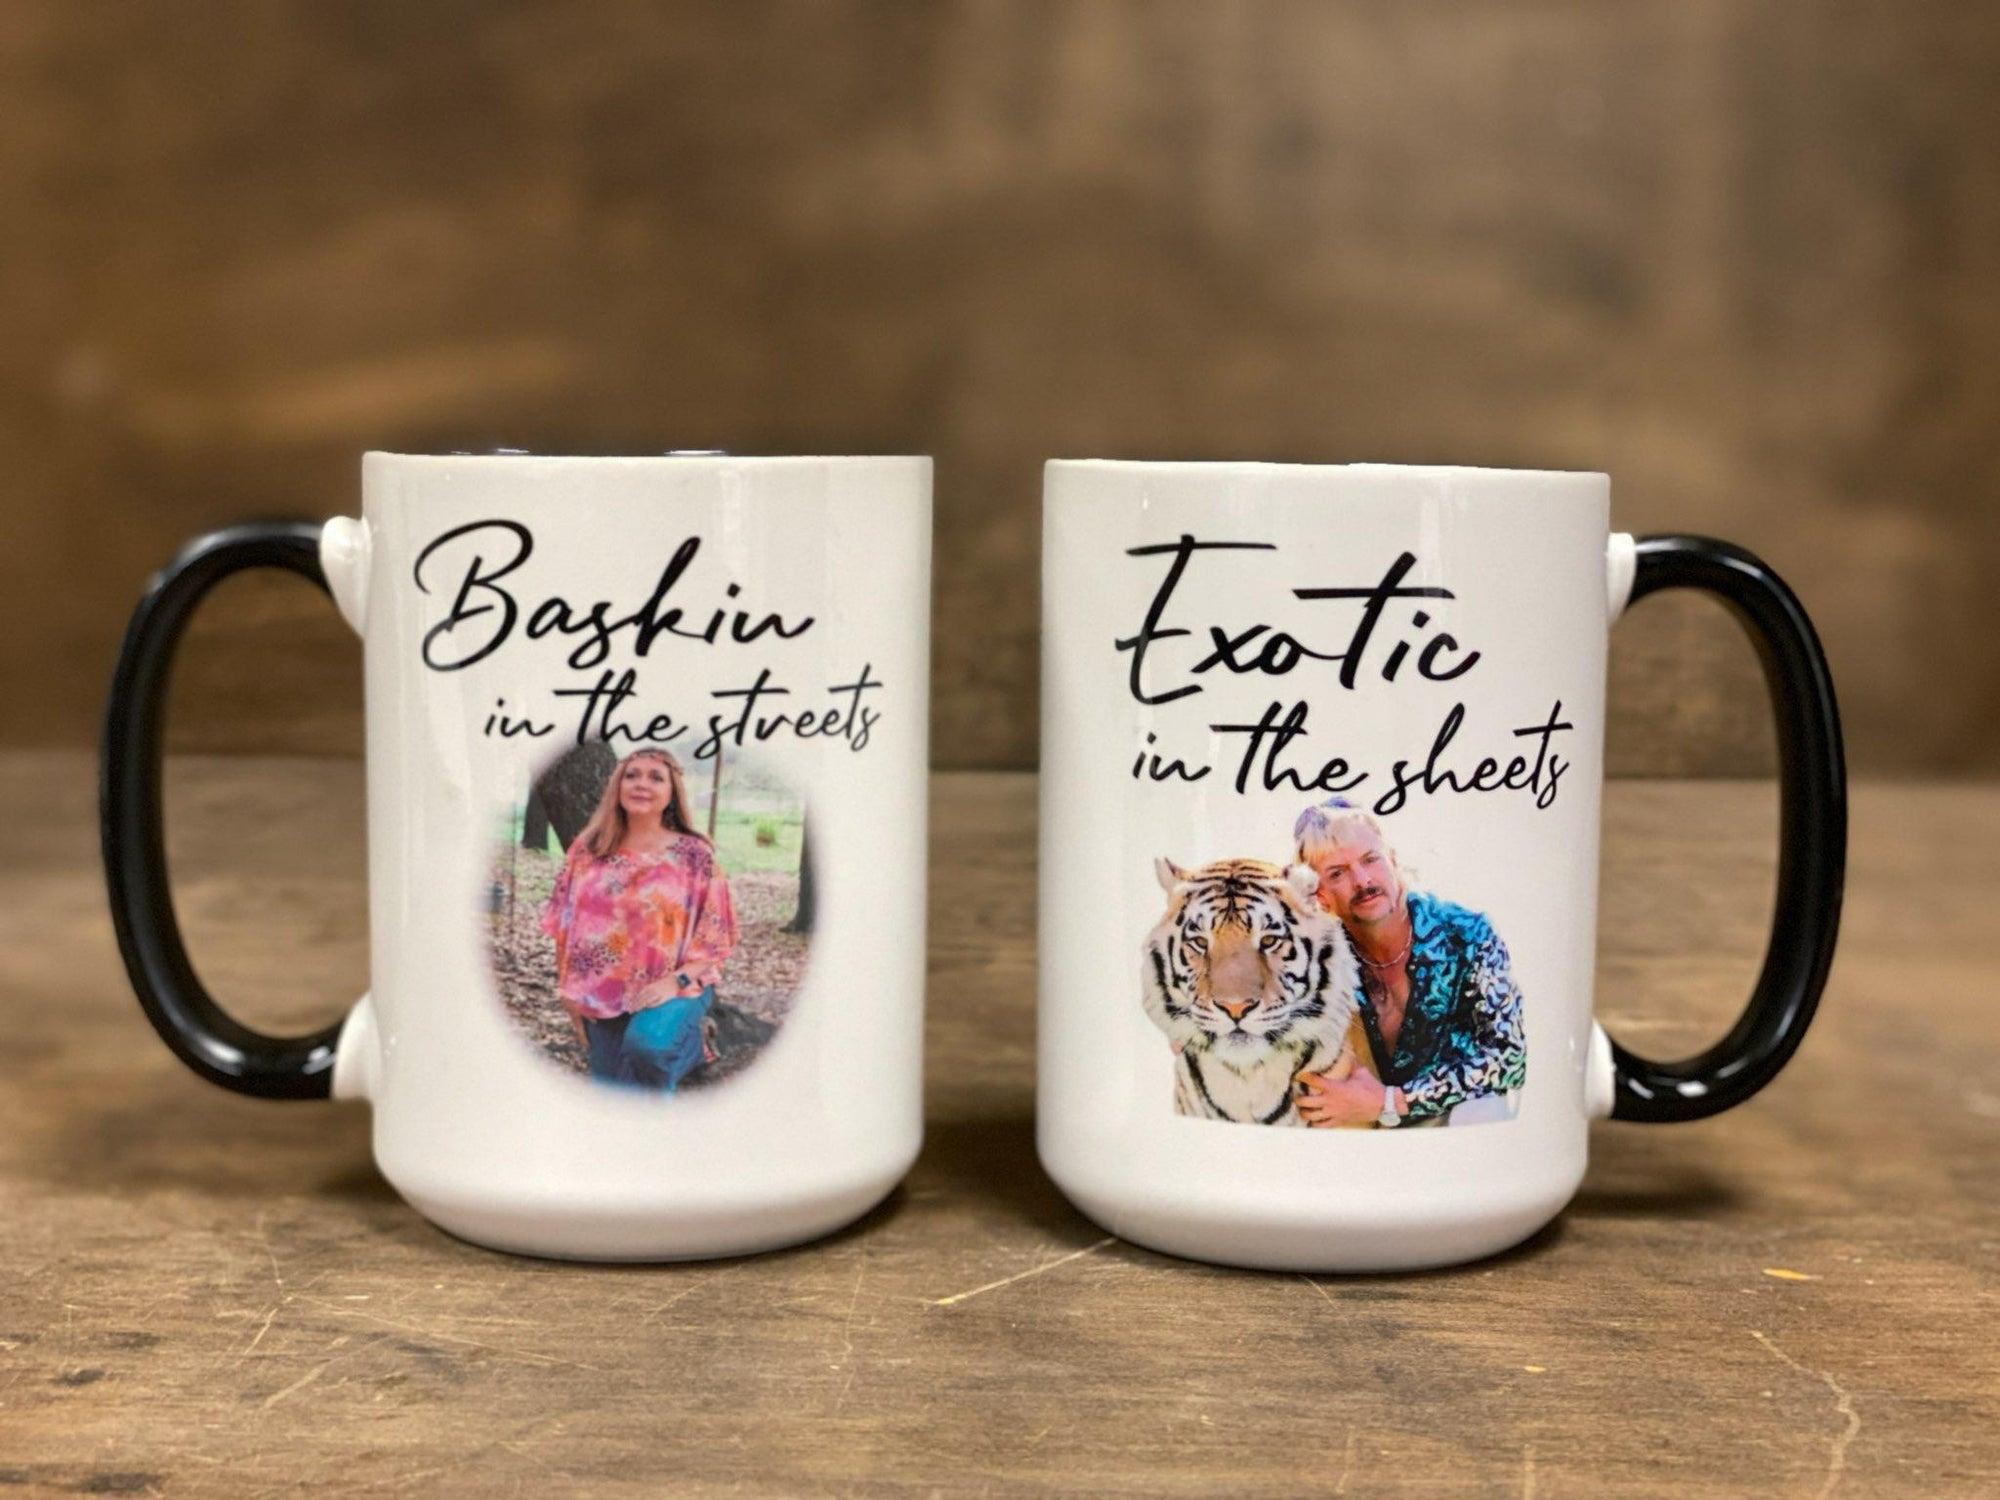 Baskin In The Streets, Exotic In The Sheets Mug